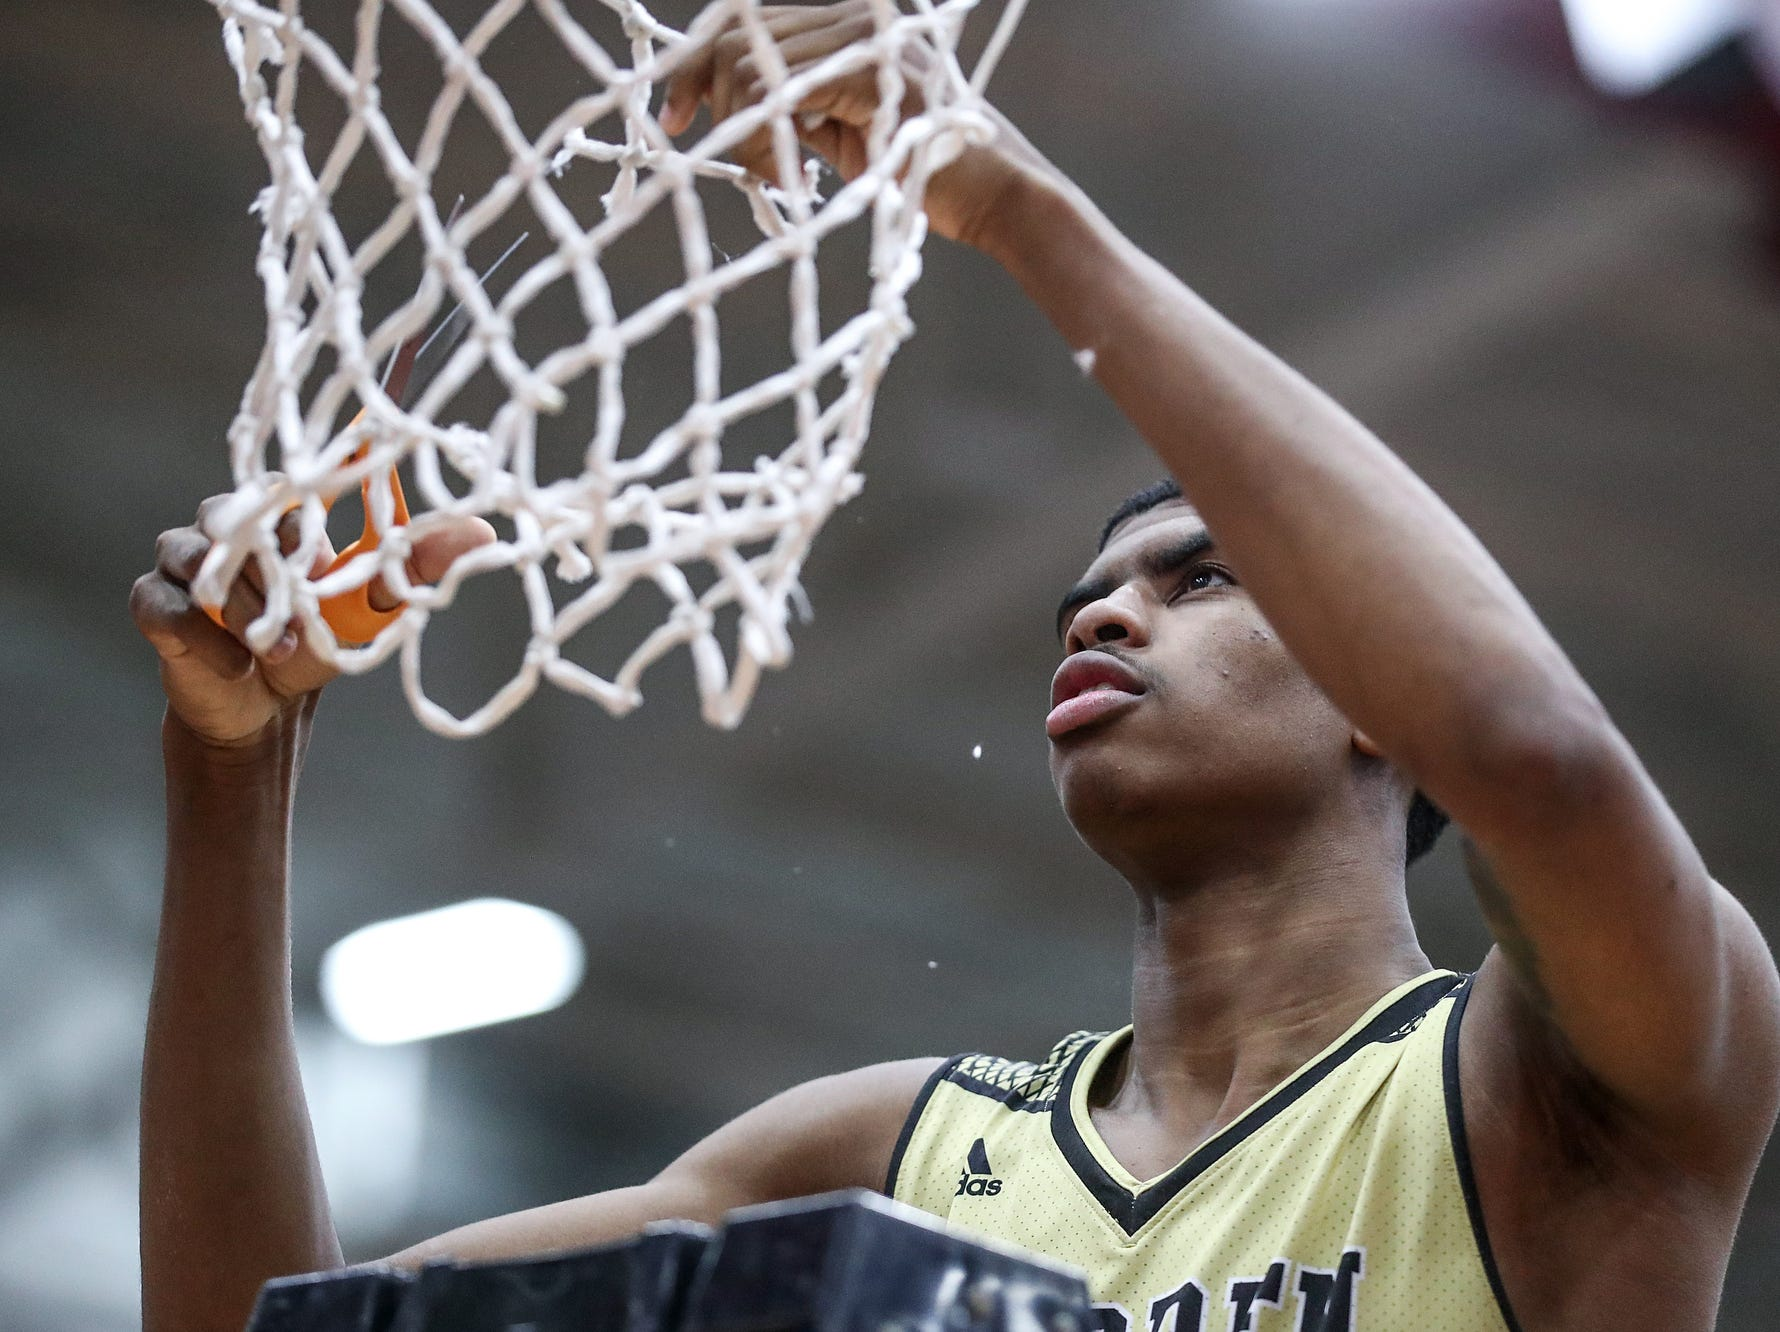 Warren Central Warriors forward Jakobie Robinson (23) cuts down a piece of the net after the Warriors won the Marion County tournament title at Southport High School in Indianapolis, Monday, Jan. 14, 2019. The victory marks a 46-game winning streak for the Warriors, the third-longest in state history.